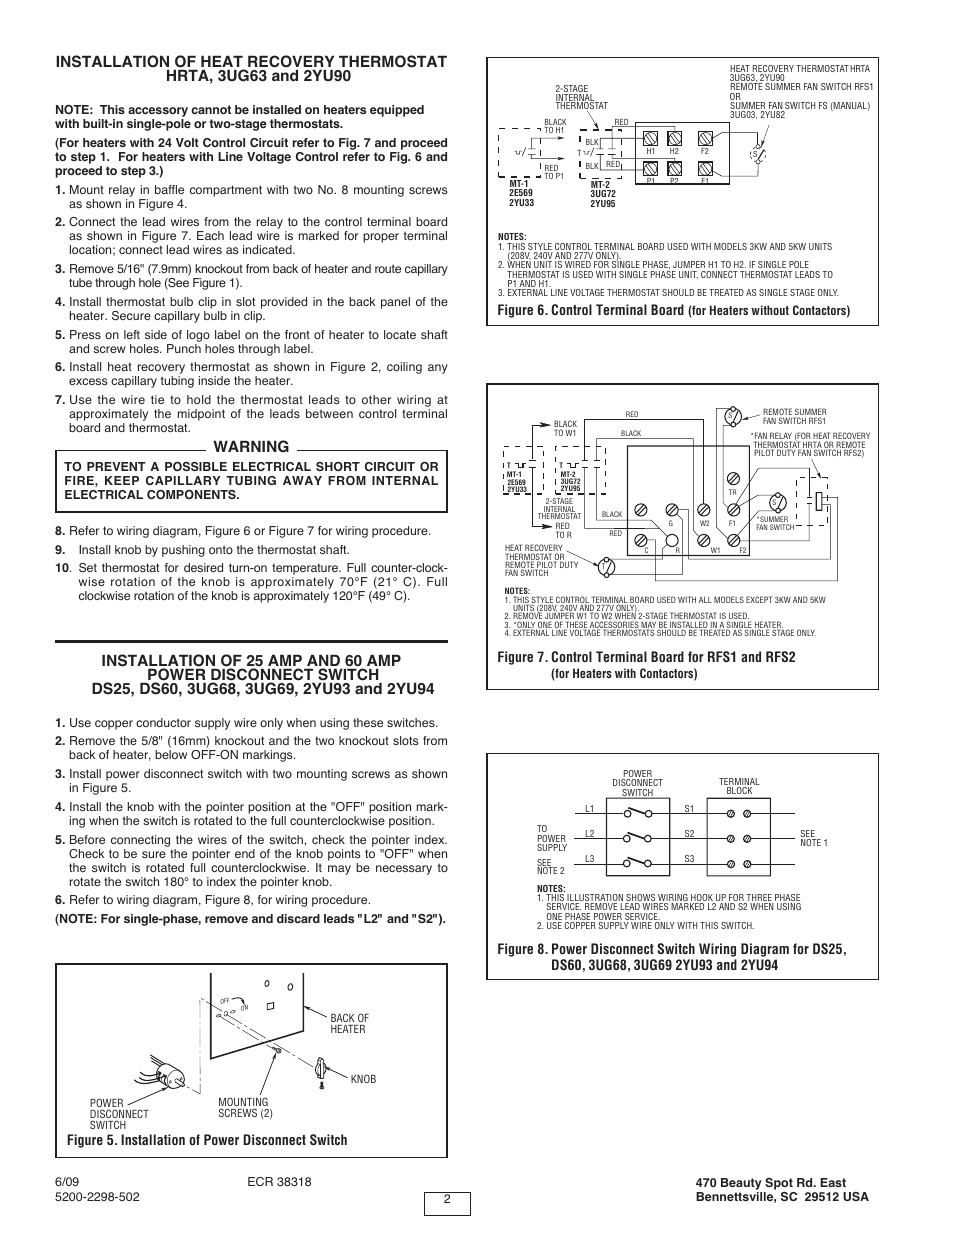 Qmark Heater Wiring Diagram Data Cadet Wall Library For 220v And